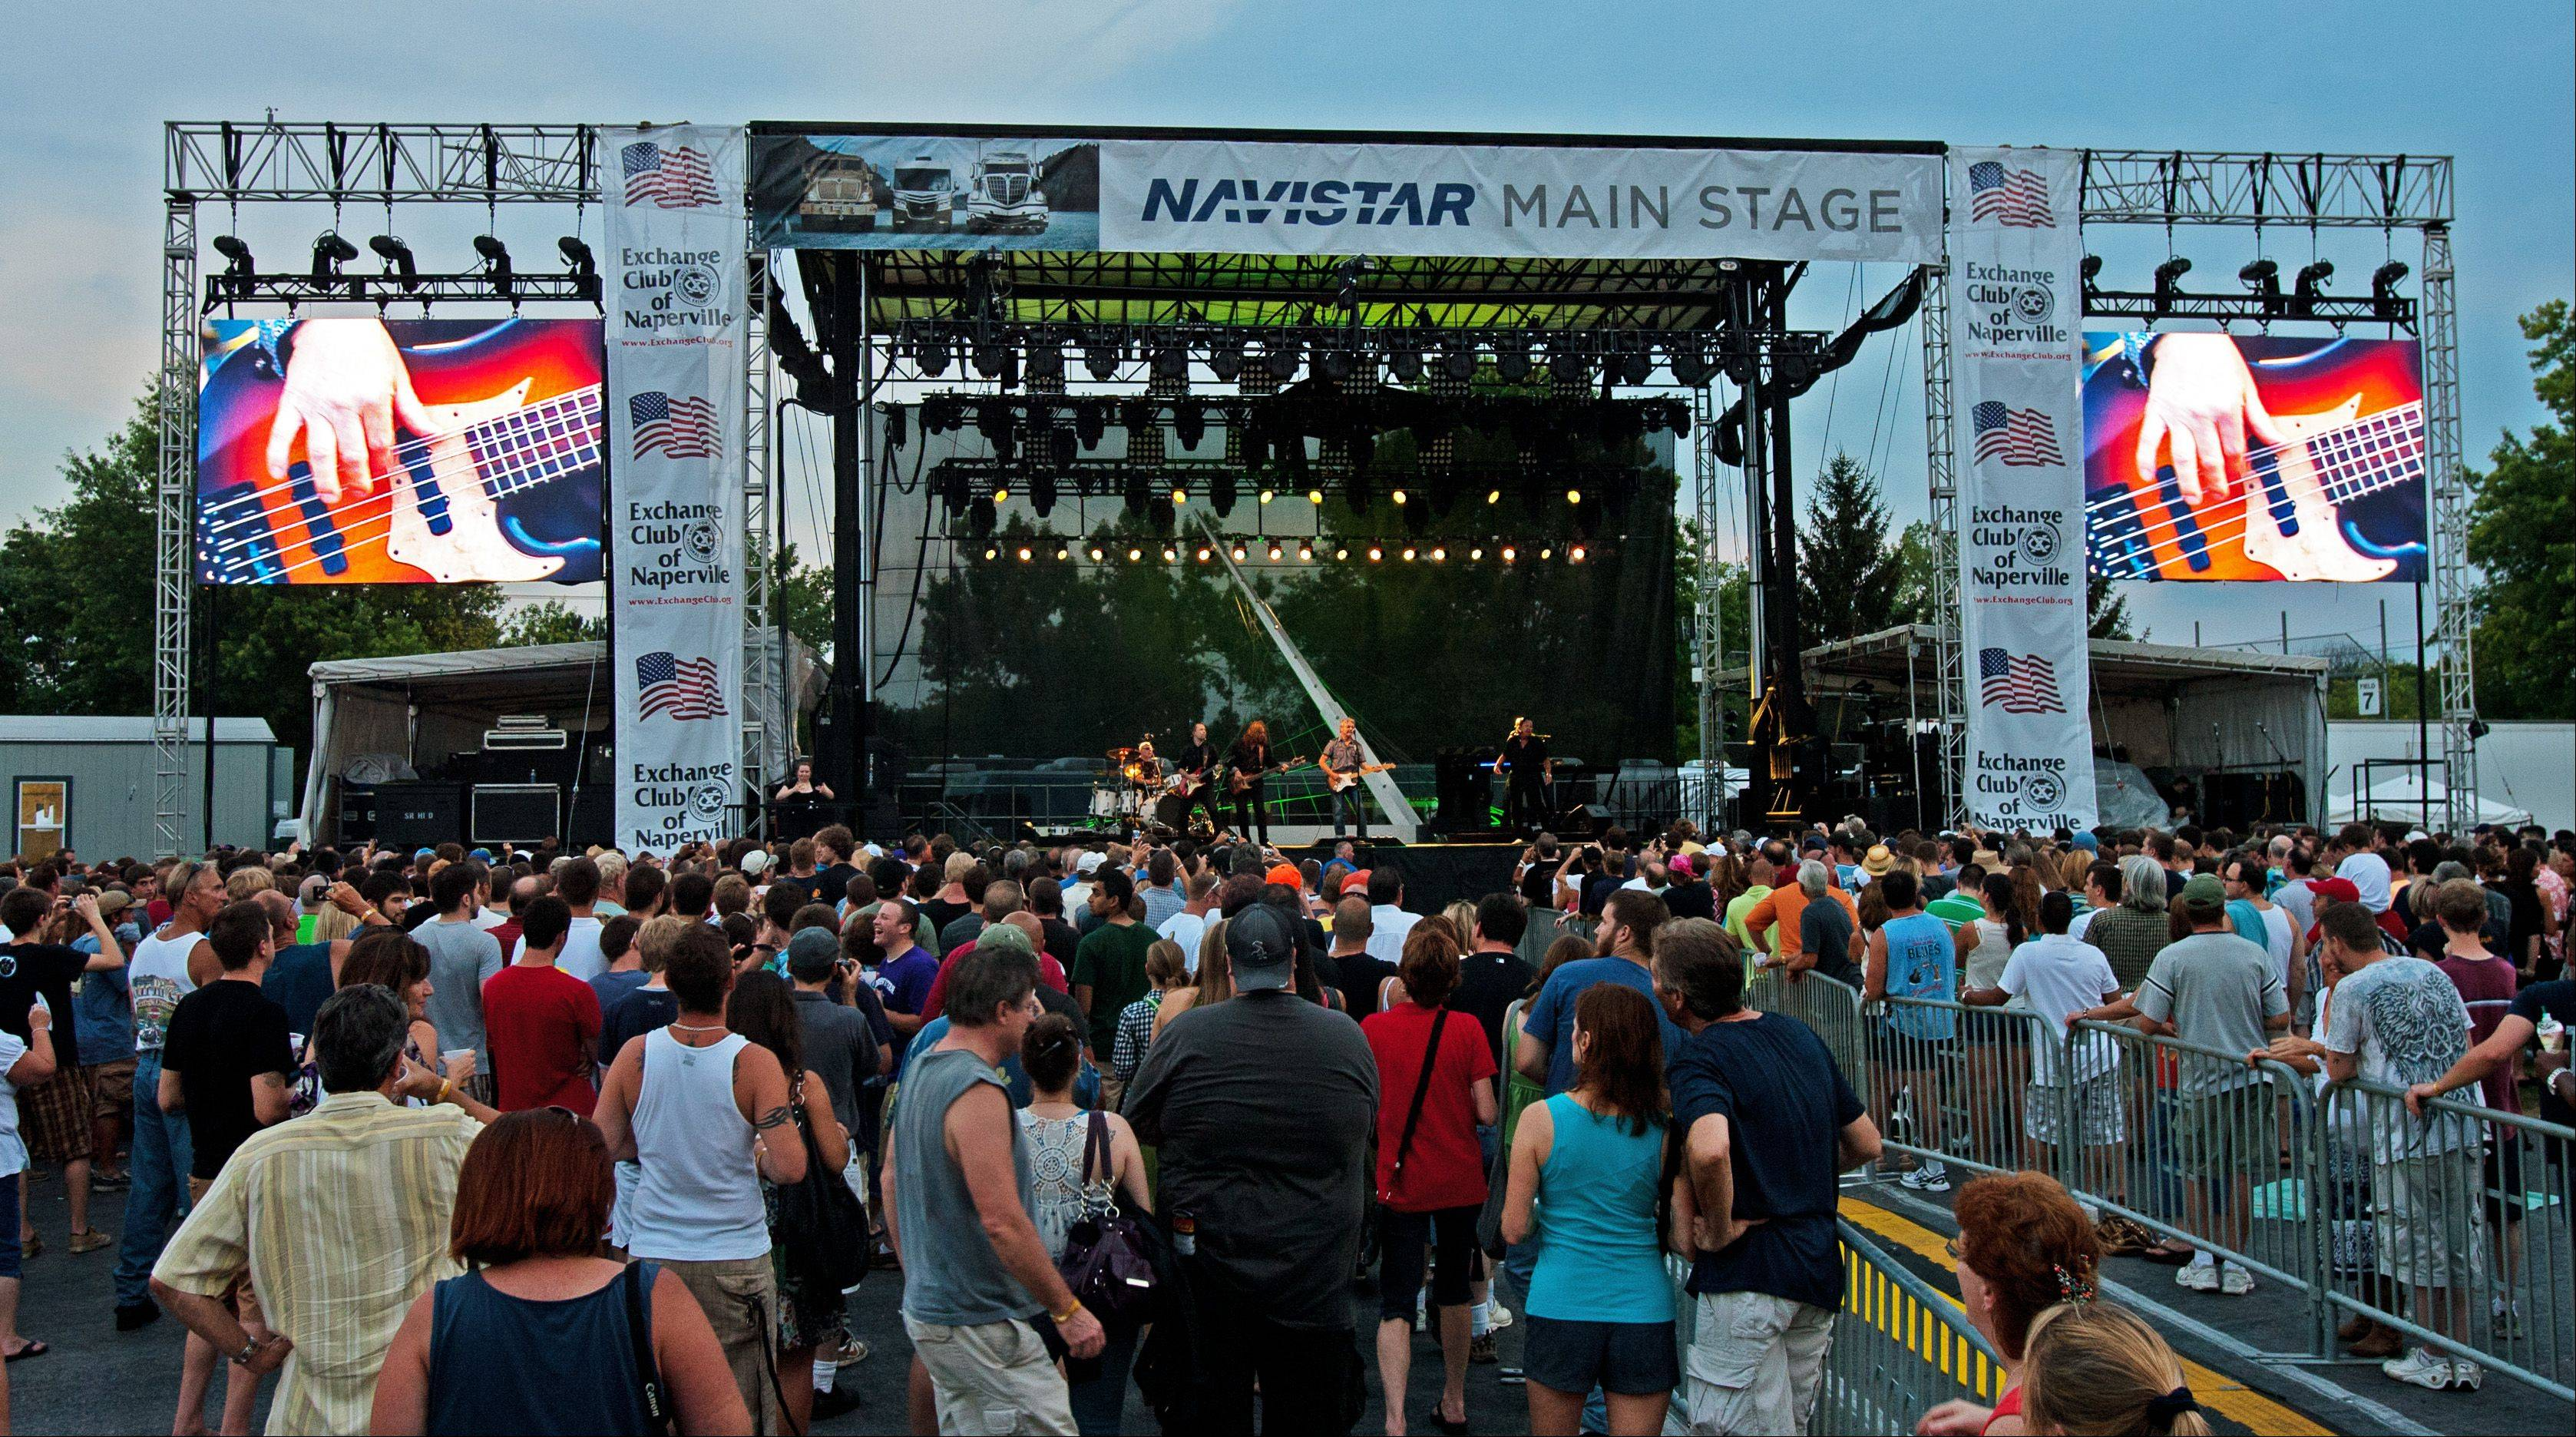 Concerts with high-profile acts have become a big draw at summer festivals like Ribfest in Naperville.